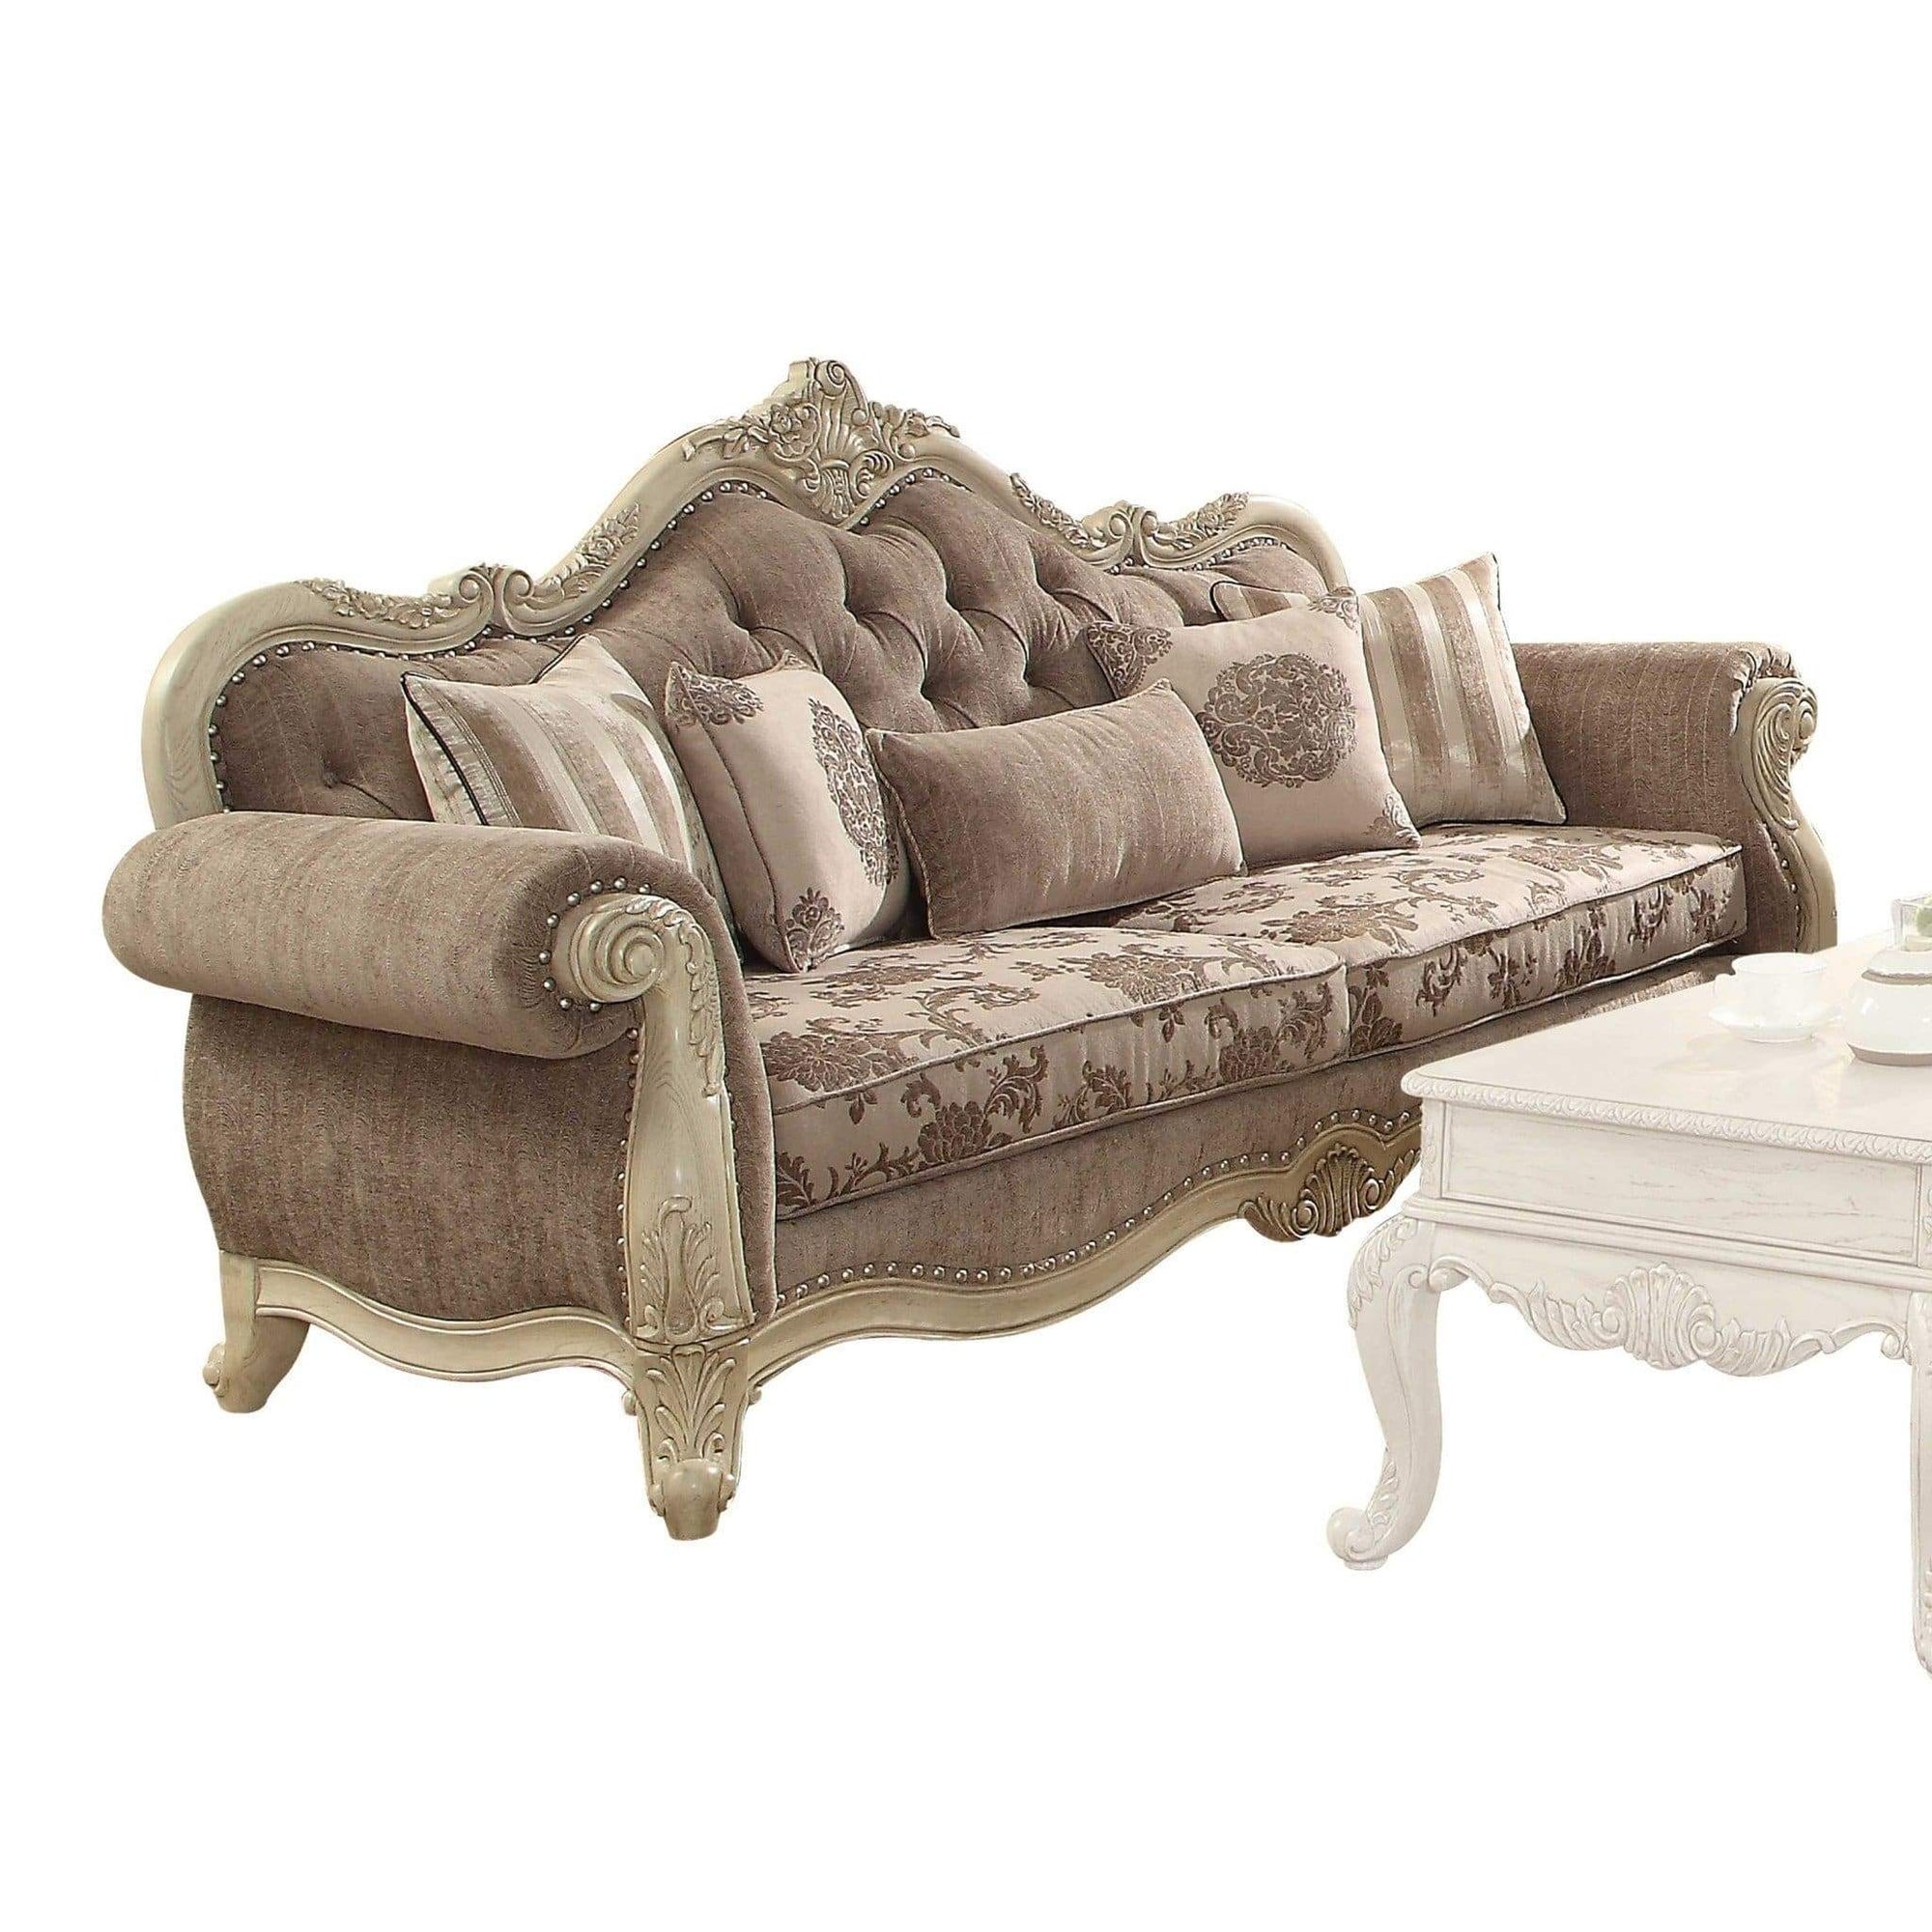 Antique Gray Accent Sofa | antique sofa | traditional furniture | living room furniture | antique couch | sofa set | sofa | furniture